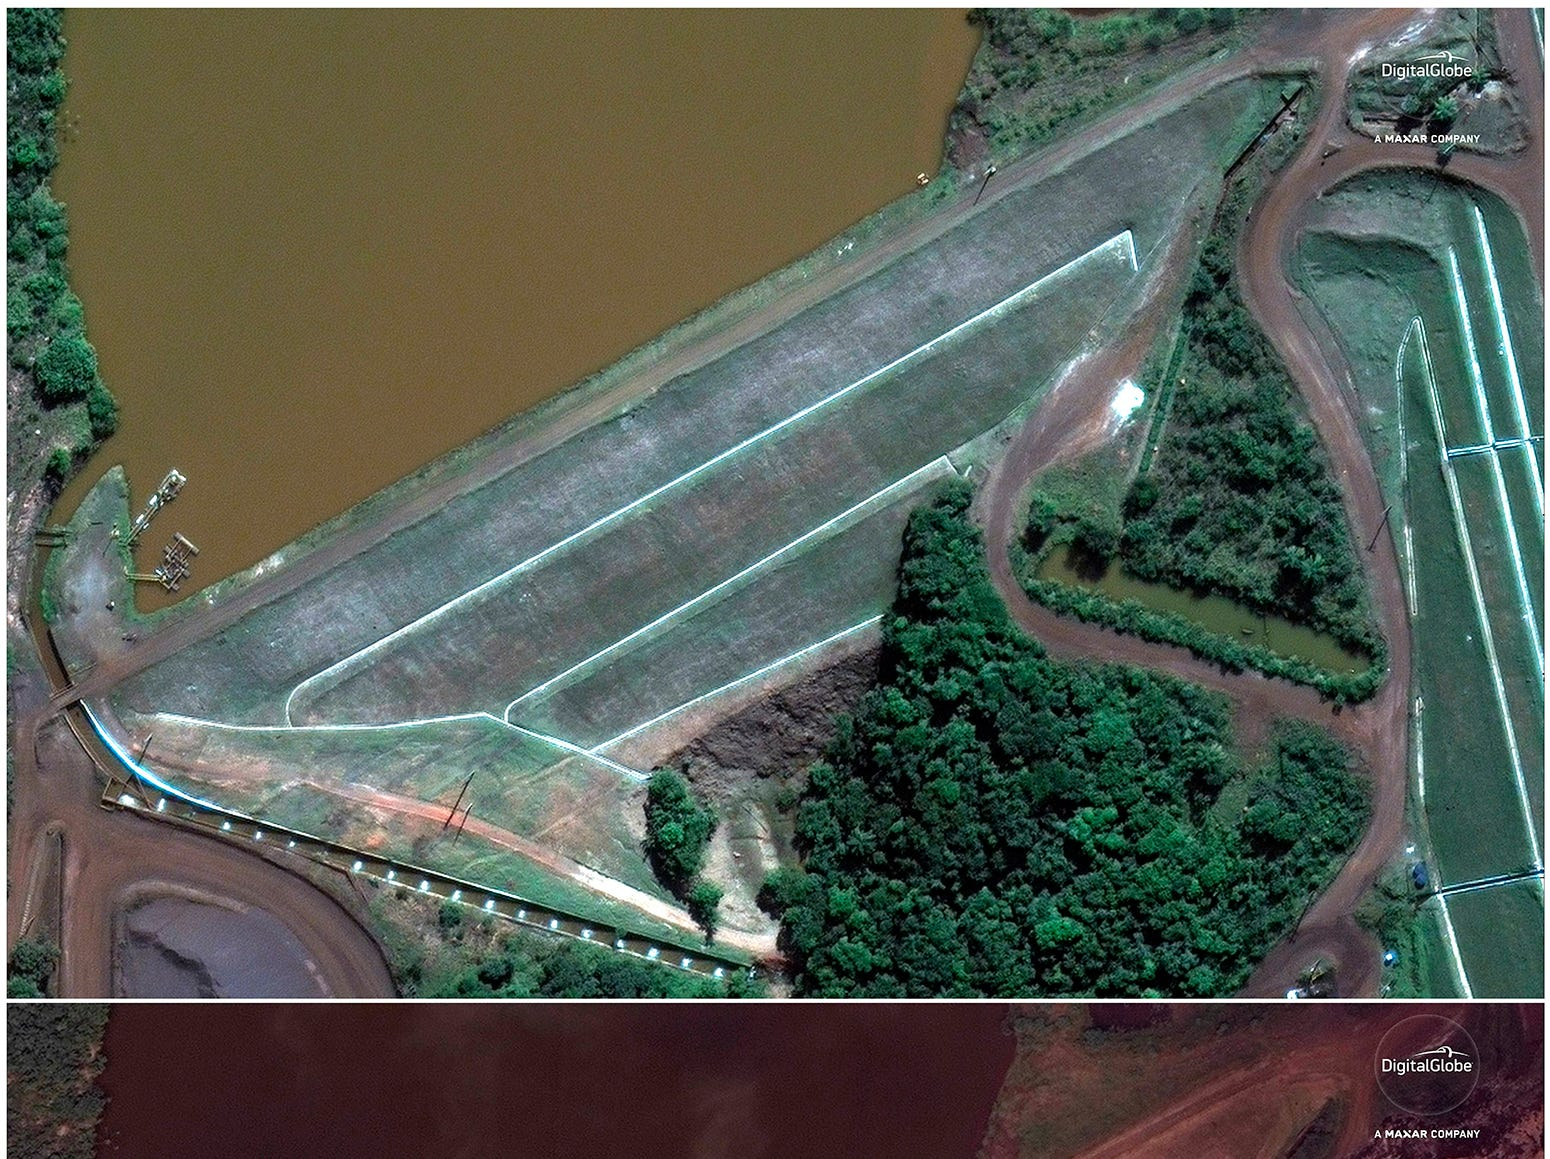 This combo of satellite images provided by DigitalGlobe shows an area northeast of Brumadinho, Brazil on June 2, 2018, top, months before a dam collapsed and flooded the area, below, seen on Saturday, Jan. 26, 2019. Brazilian officials suspended the search on Sunday, Jan. 27, for potential survivors of the Jan. 25 dam collapse that has killed at least 40 people amid fears that another nearby dam owned by the same company, Vale, was also at risk of breaching.